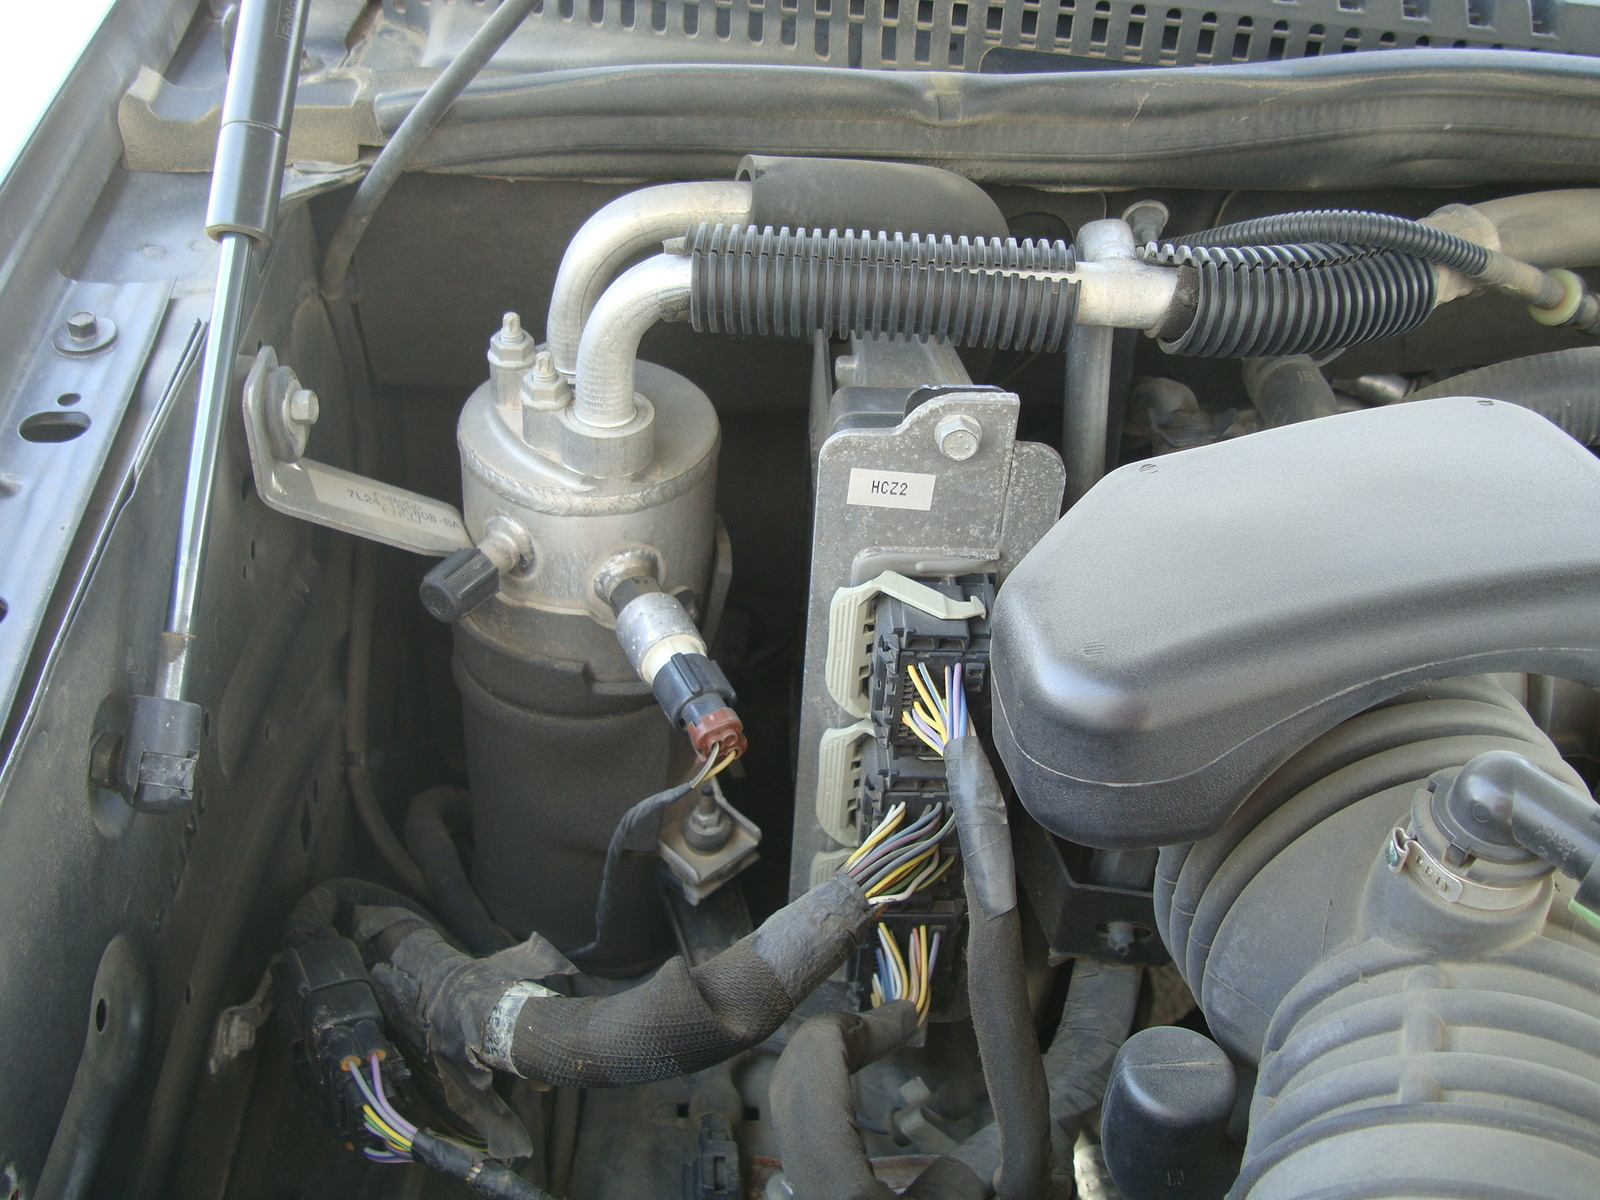 Ford Explorer Questions I Have 2008 A Ram Air Compressor Wiring Diagram Problem With The Thermostat It Wa Cargurus